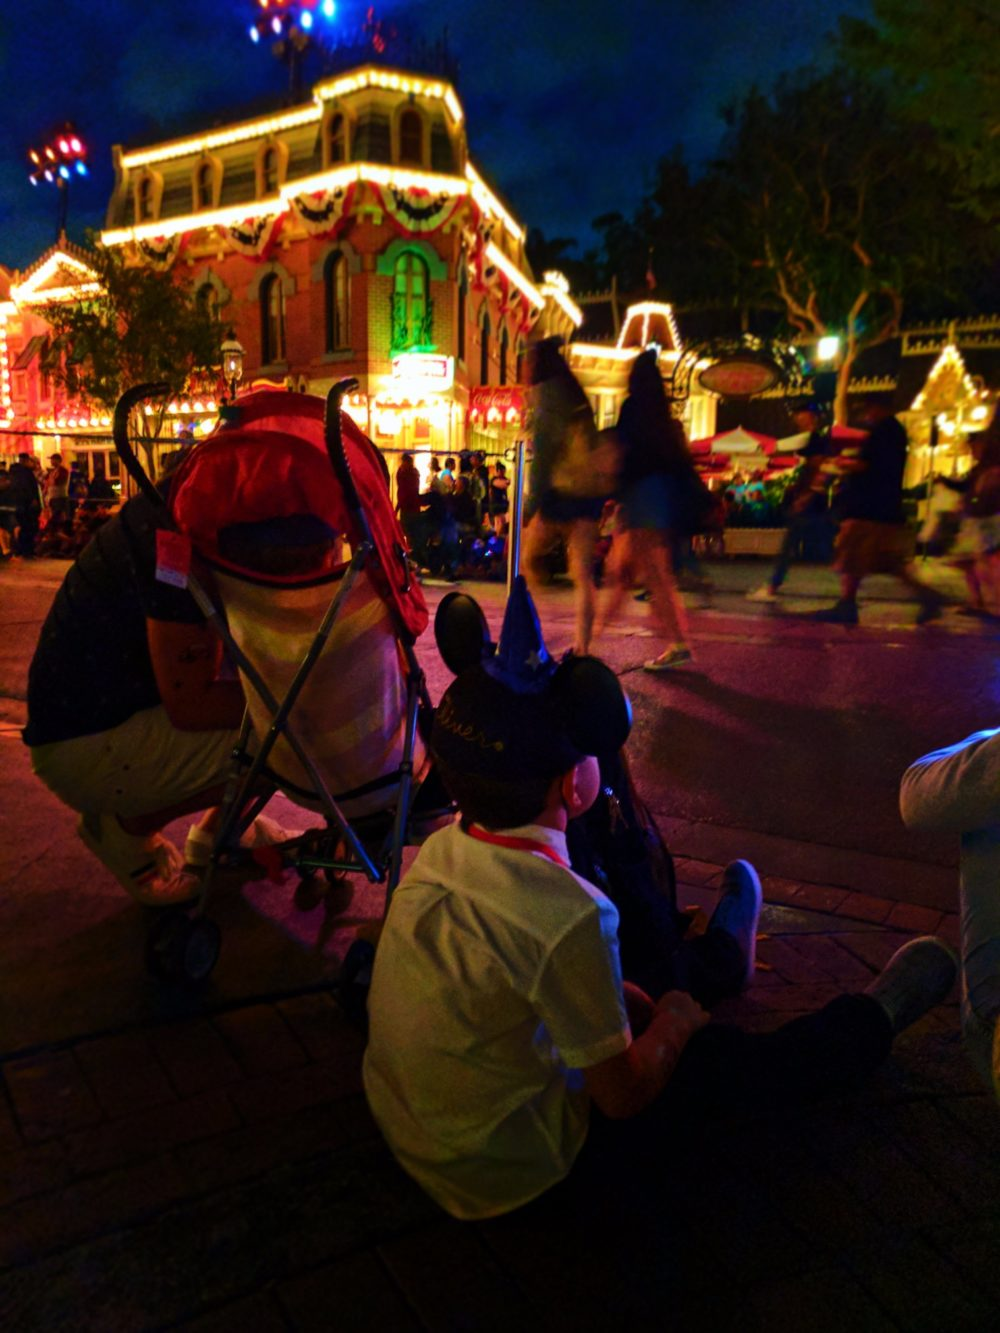 Taylor Family waiting for the Main Street Electrical Parade Disneyland at night 2